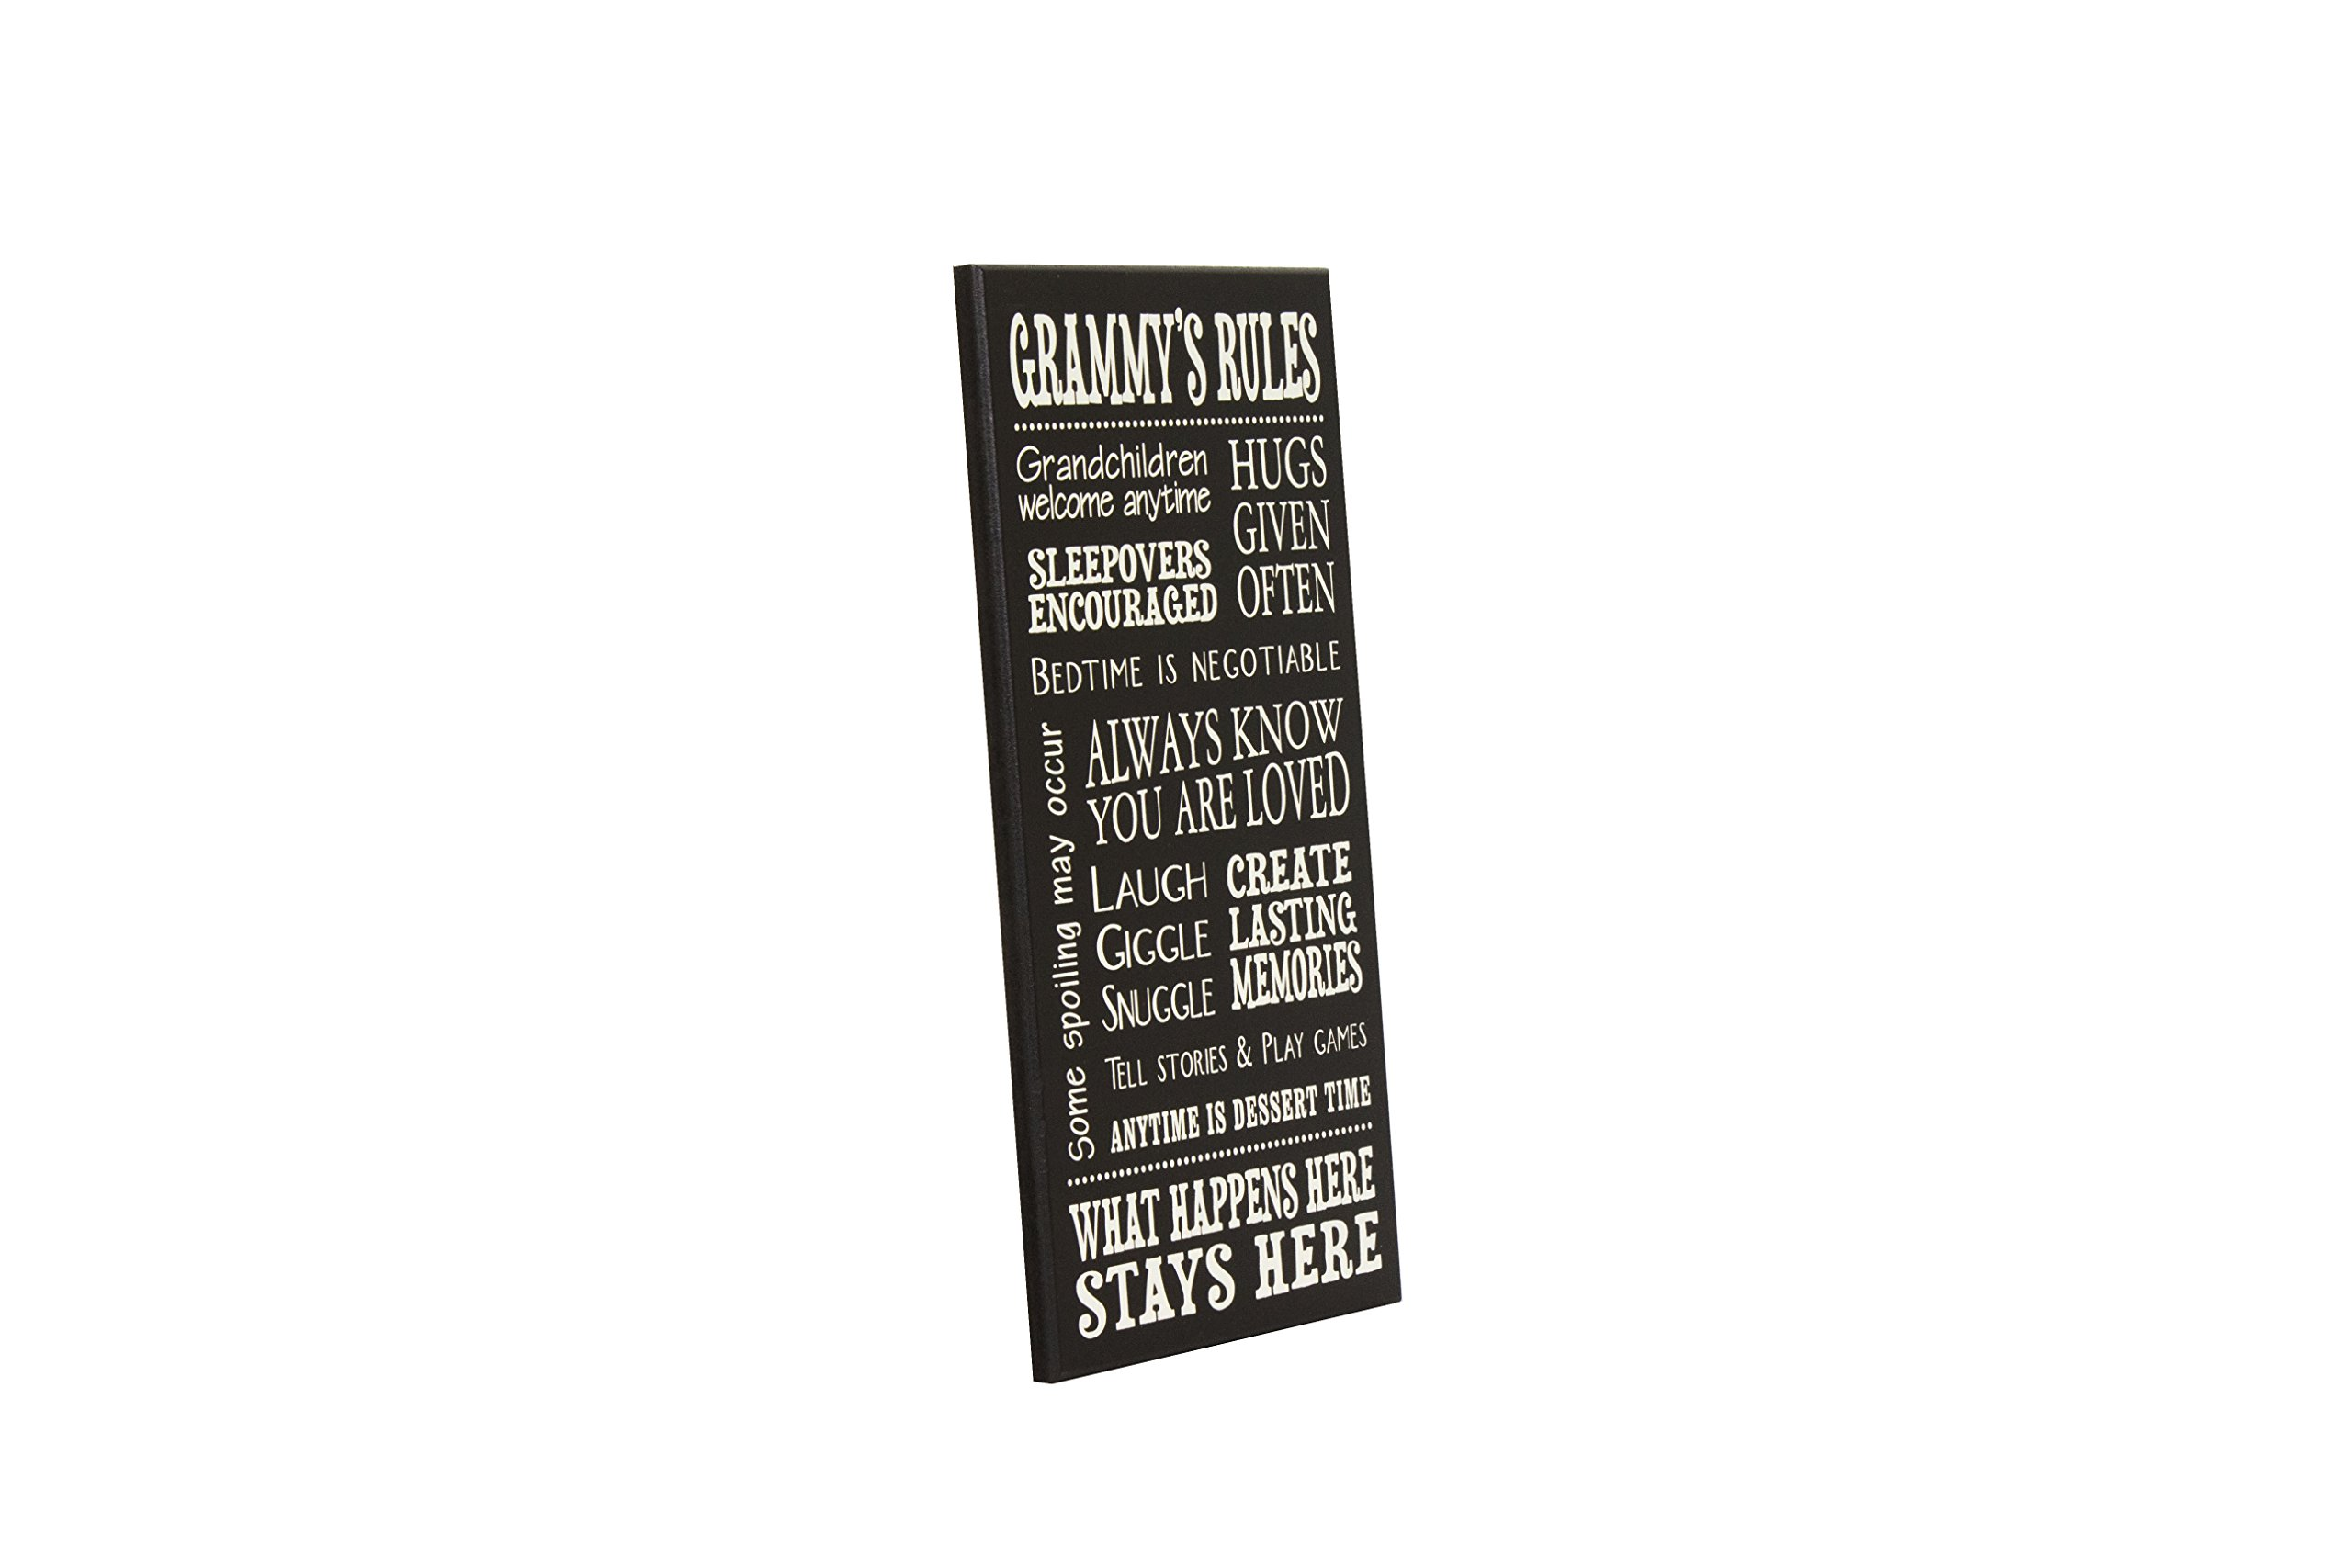 My Word! Grammy's Rules-8.5 x 16 Decorative Sign, Black with Cream Lettering by My Word! (Image #3)